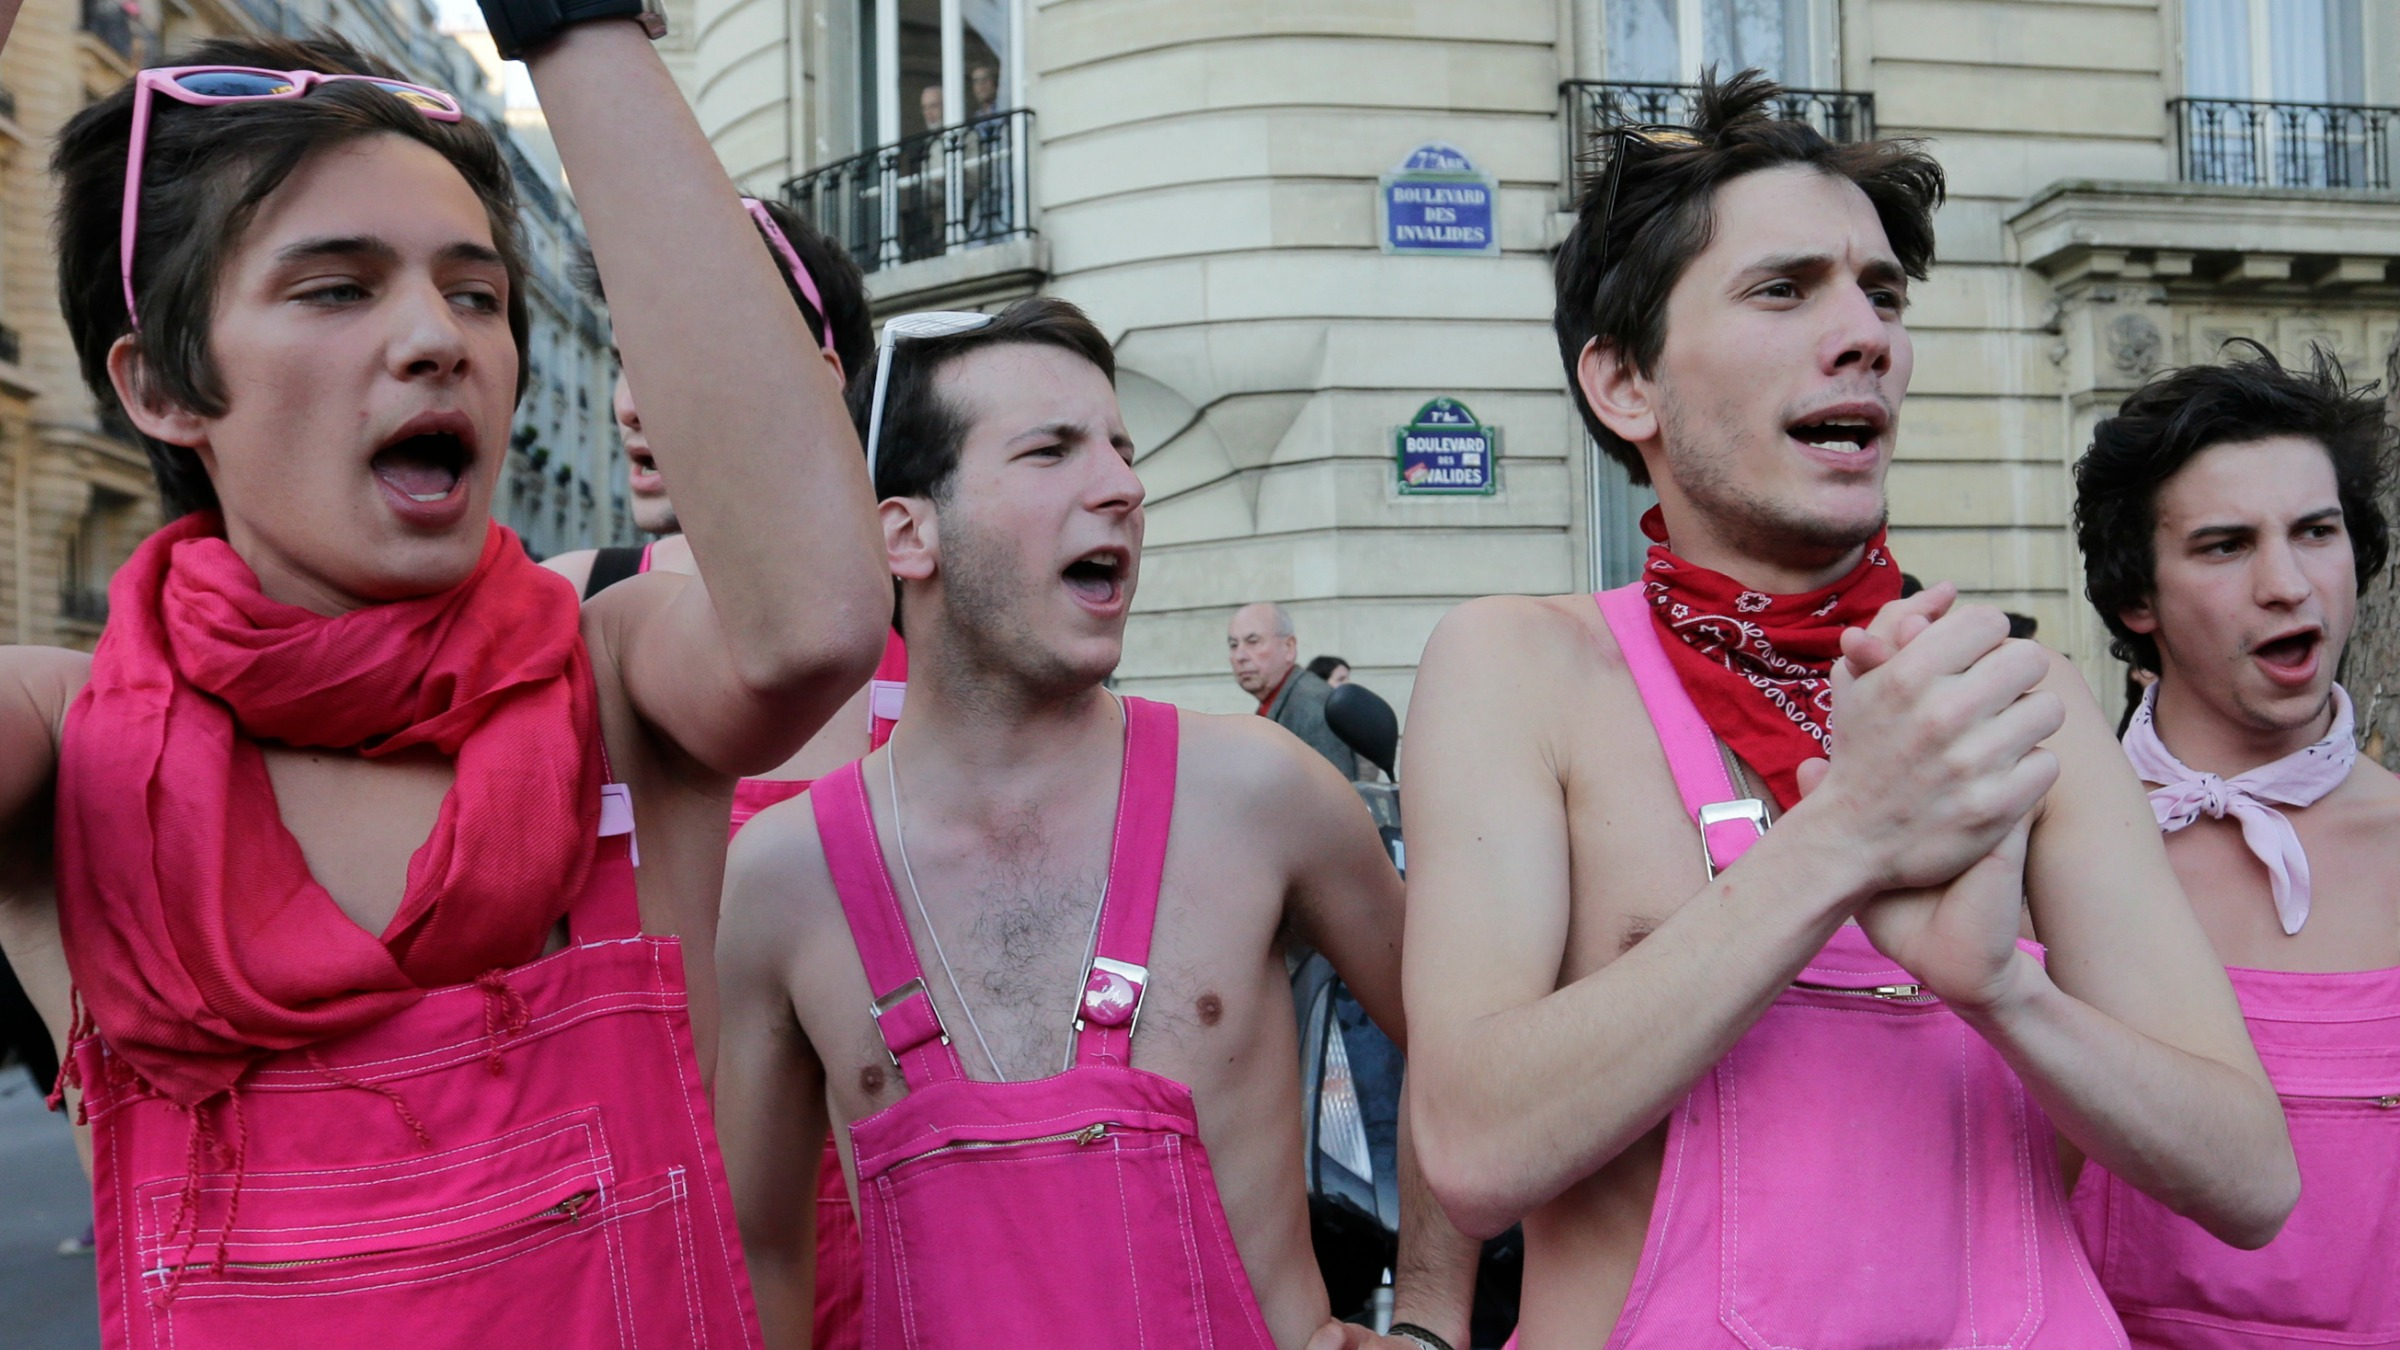 Long before breast cancer awareness, real men wore pink.